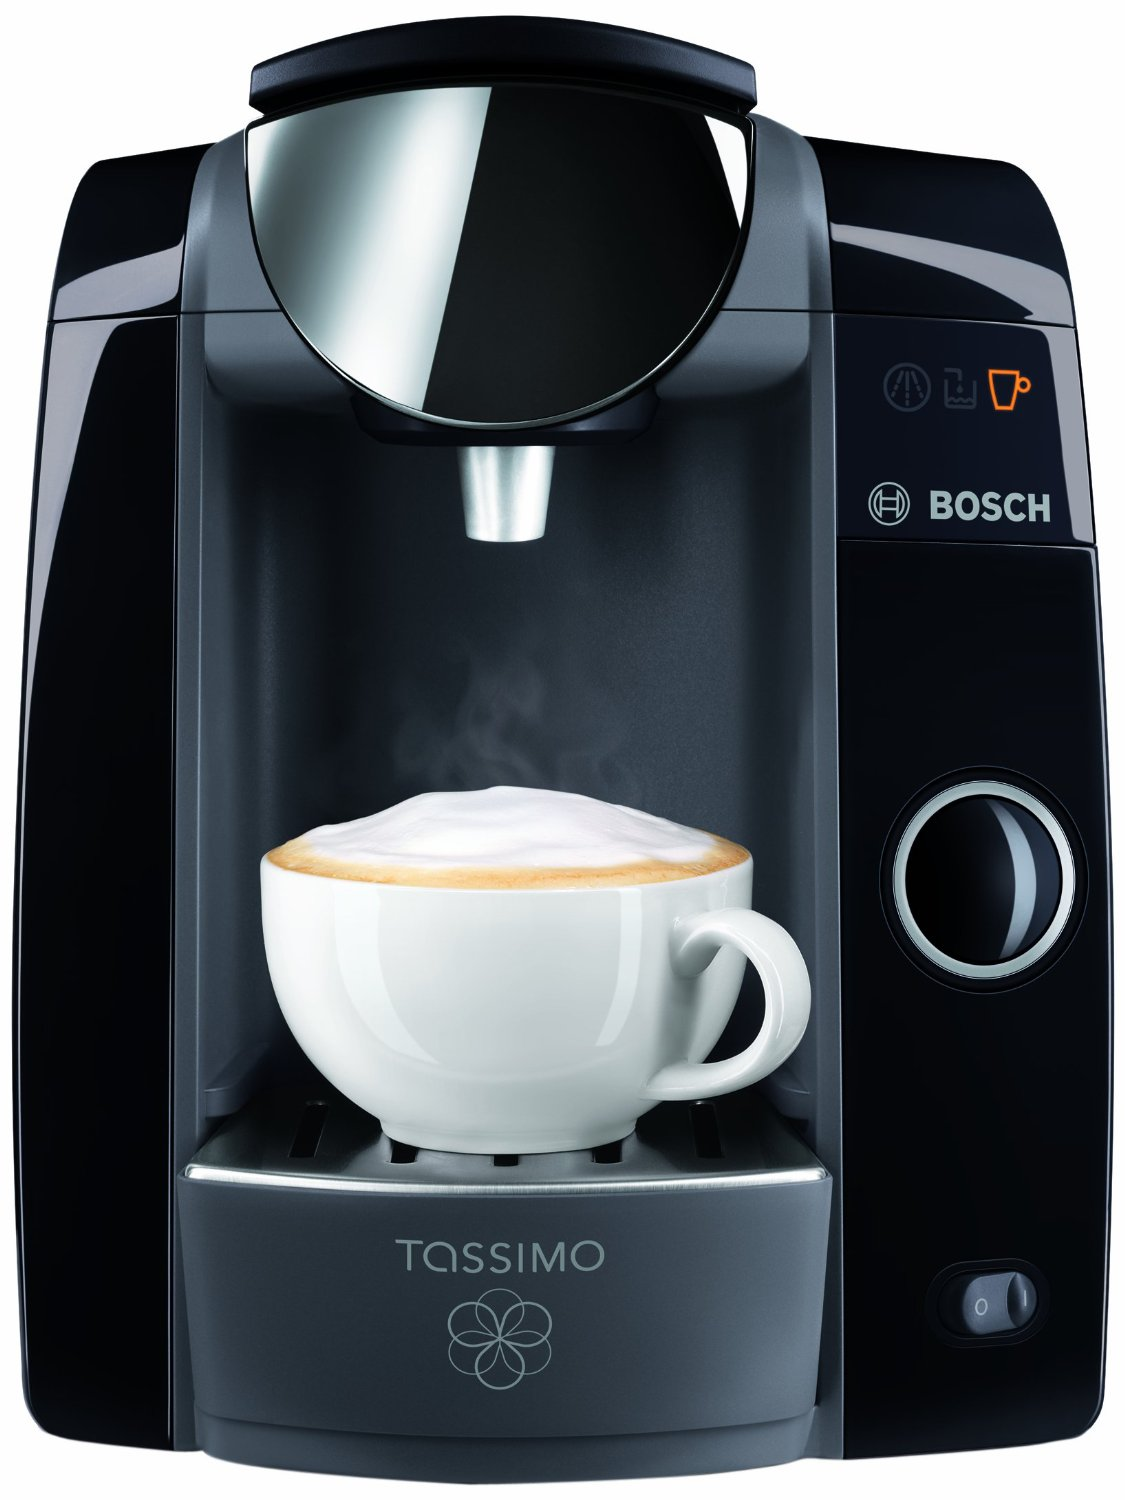 Amazon Canada Deal: Save 50% Off Tassimo Coffee Maker Only USD 74.99 + Free Shipping Canadian ...